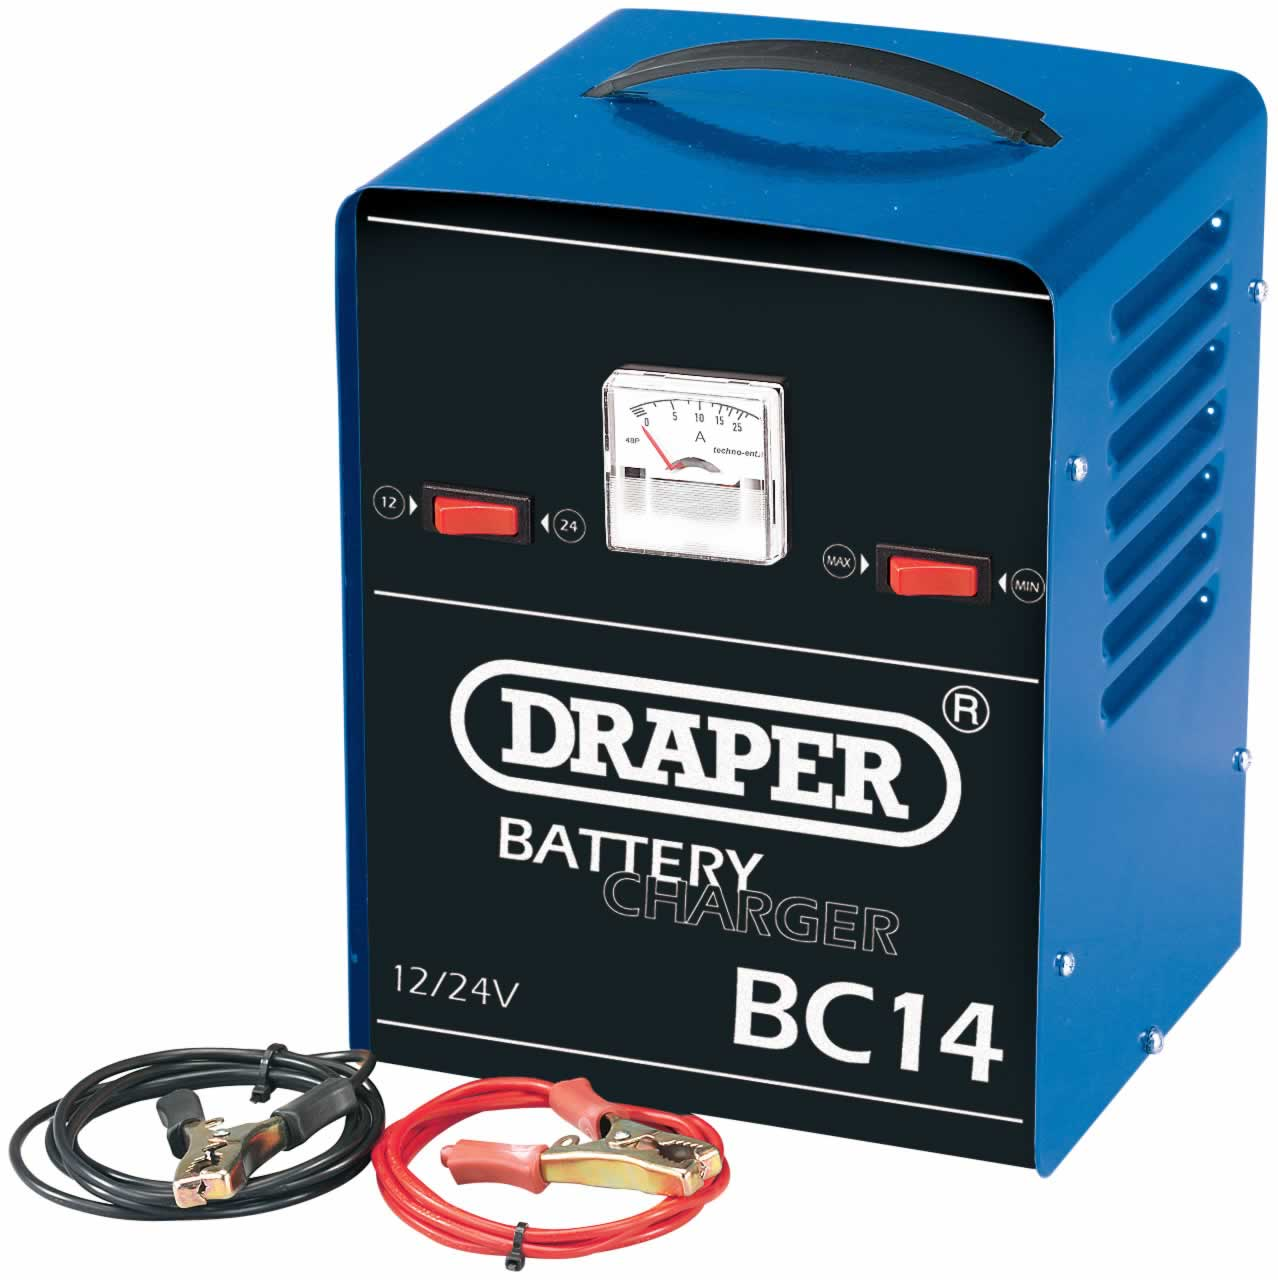 12/24V 12A BATTERY CHARGER